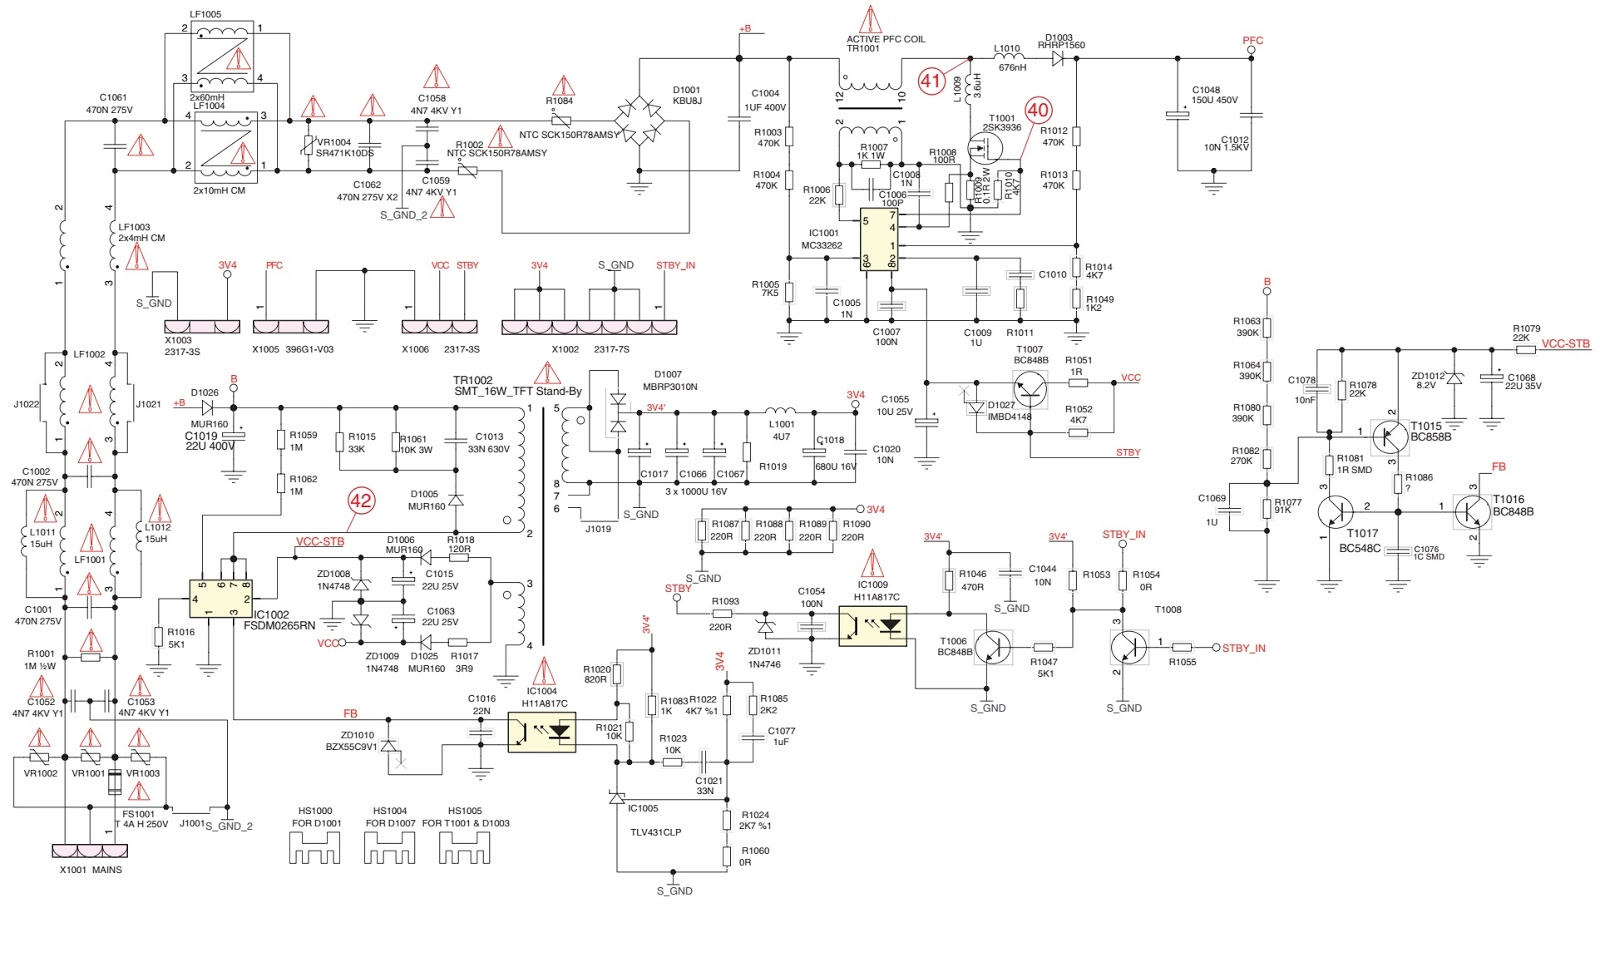 grundig lcd tv smps schematics circuit diagrams electronic besides live sound system setup diagram on tv schematic block diagram [ 1600 x 957 Pixel ]